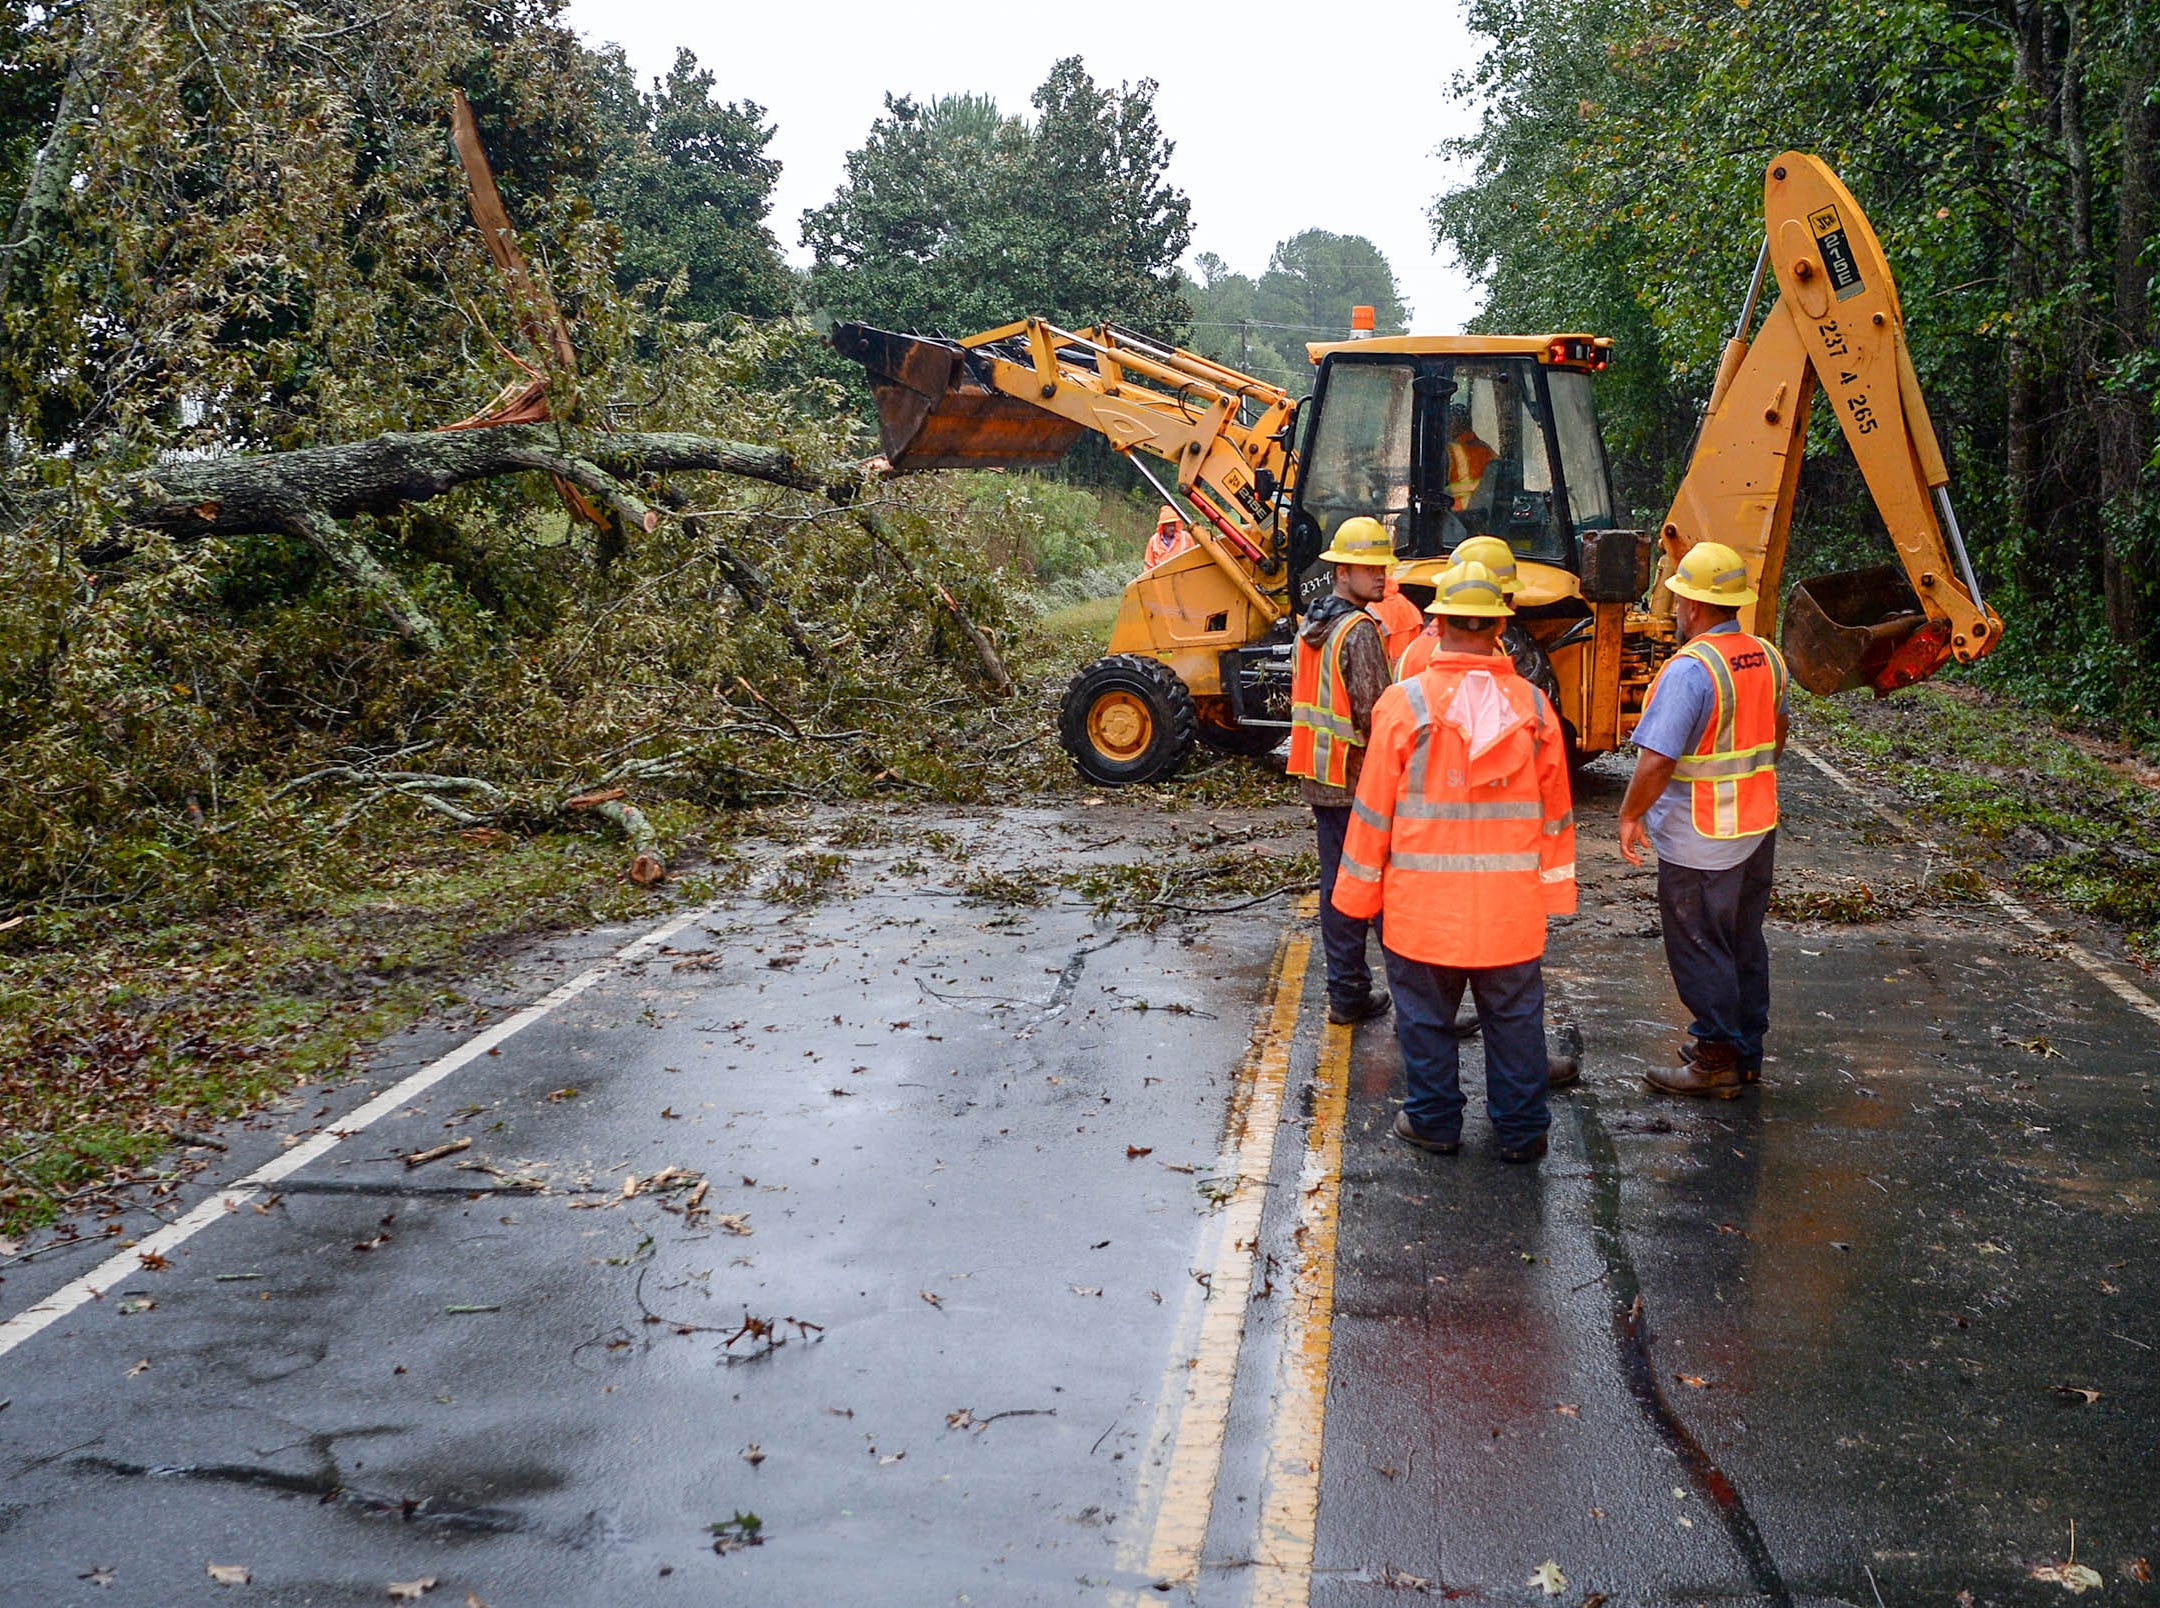 SCDOT workers clean up a fallen oak tree along Cherokee Road near SC 81 North in Anderson on Thursday. Rainfall from Hurricane Michael came through Anderson County on Thursday morning.